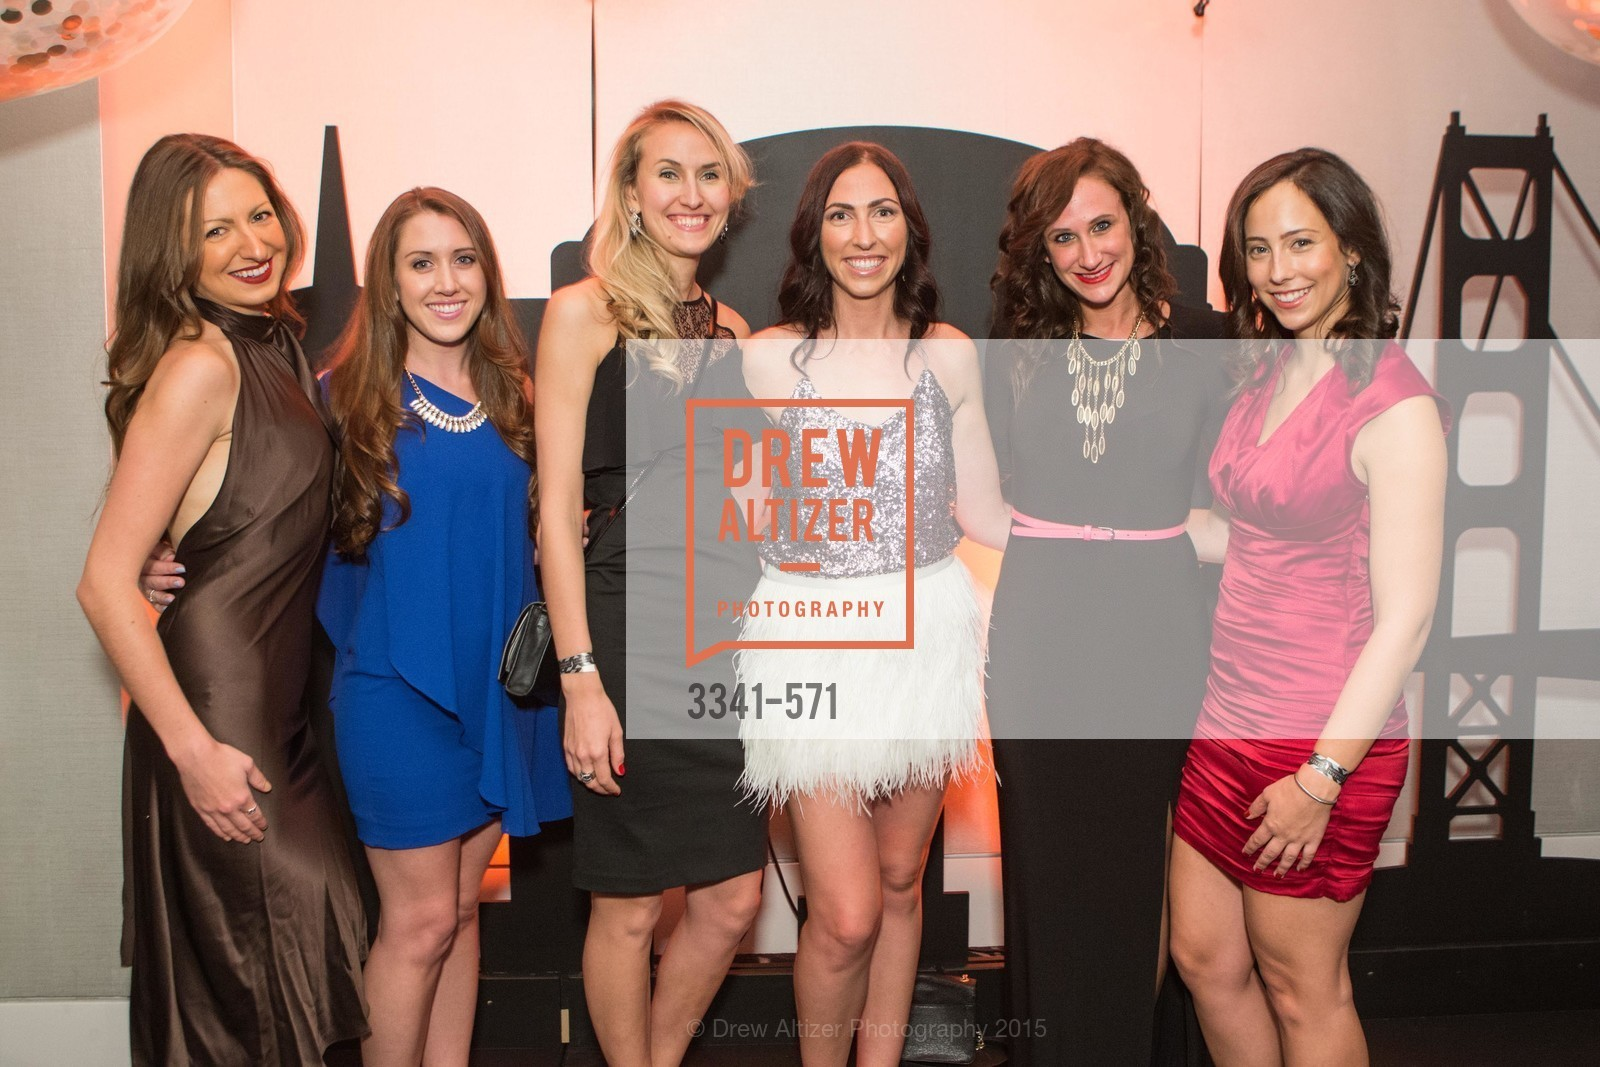 Melanie Dudyj, Rachel Thompson, Sofia Chesnokova, Kathleen Nolan, Janelle Mertens, Leigh Ann Benicewicz, The 10th Annual San Francisco Social, W Hotel. 181 3rd St, November 21st, 2015,Drew Altizer, Drew Altizer Photography, full-service event agency, private events, San Francisco photographer, photographer California